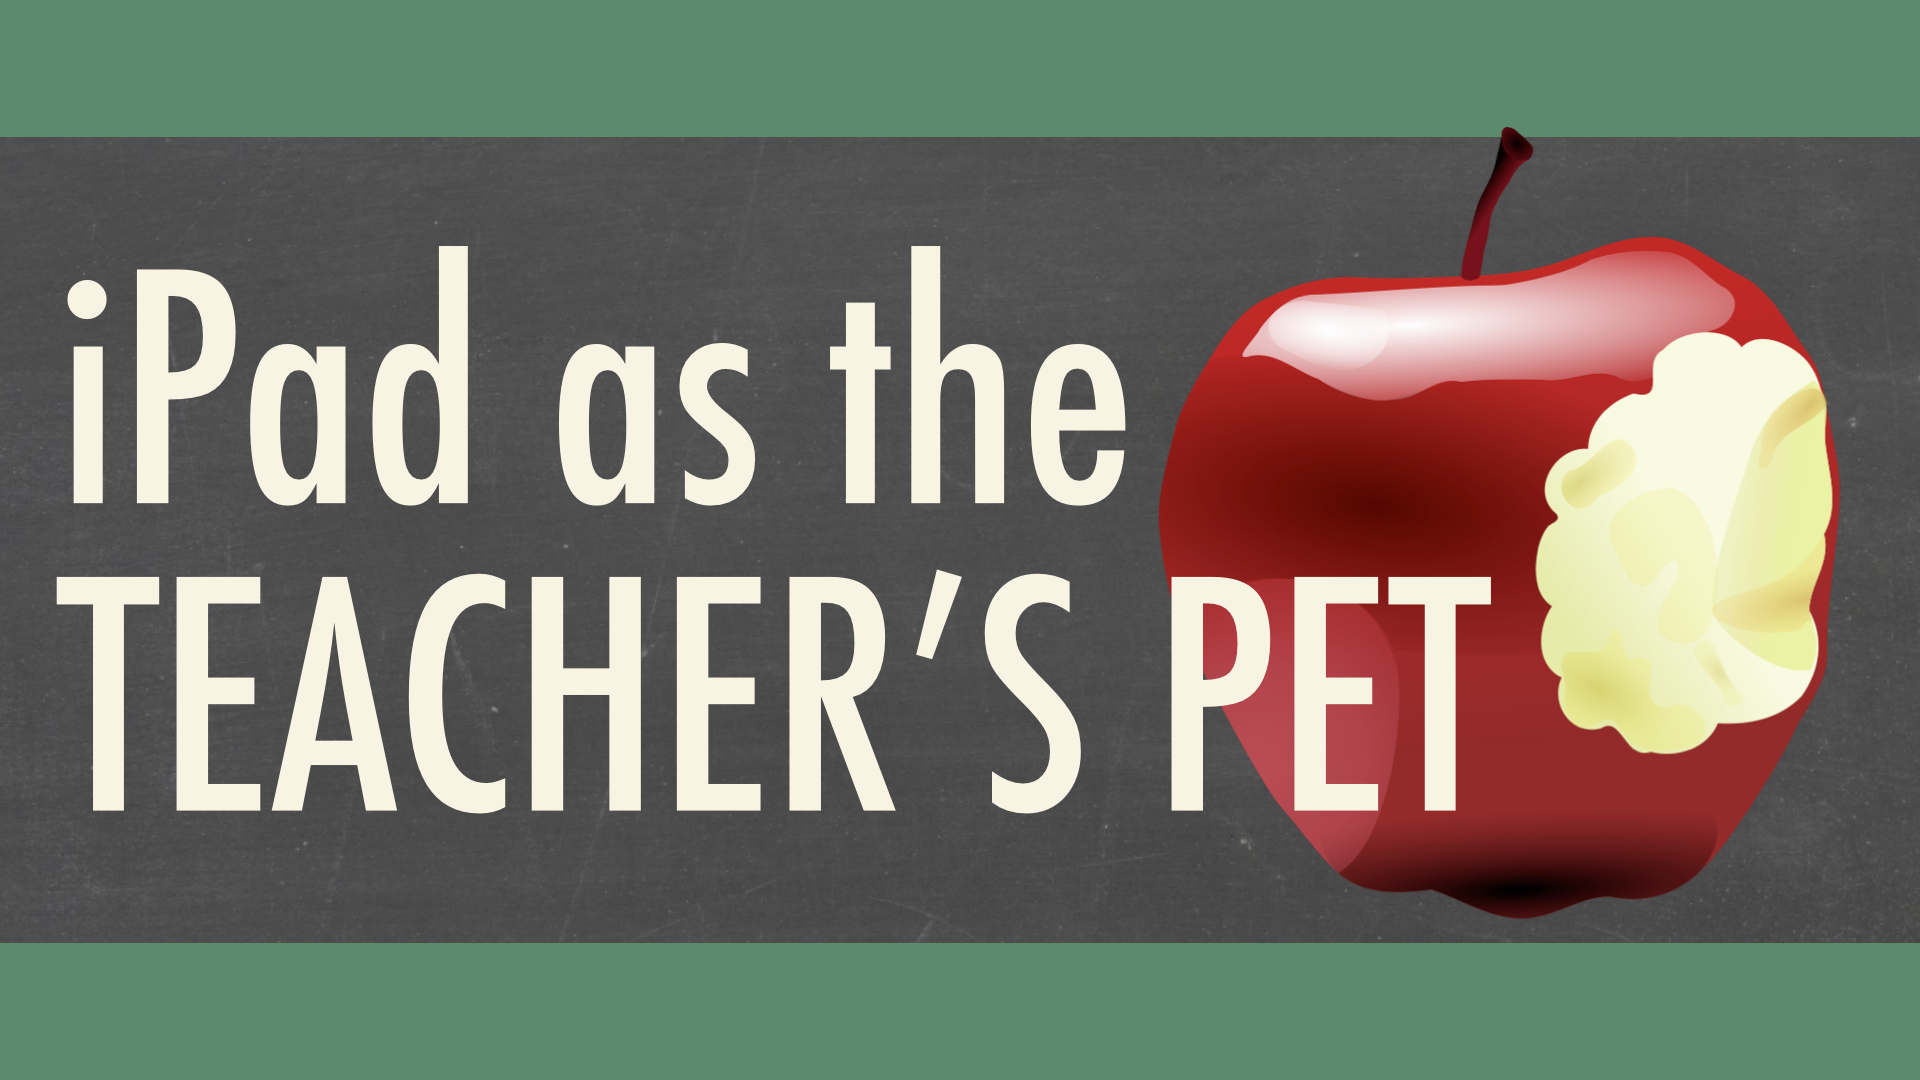 iPad Teacher's Pet HQ.002.png